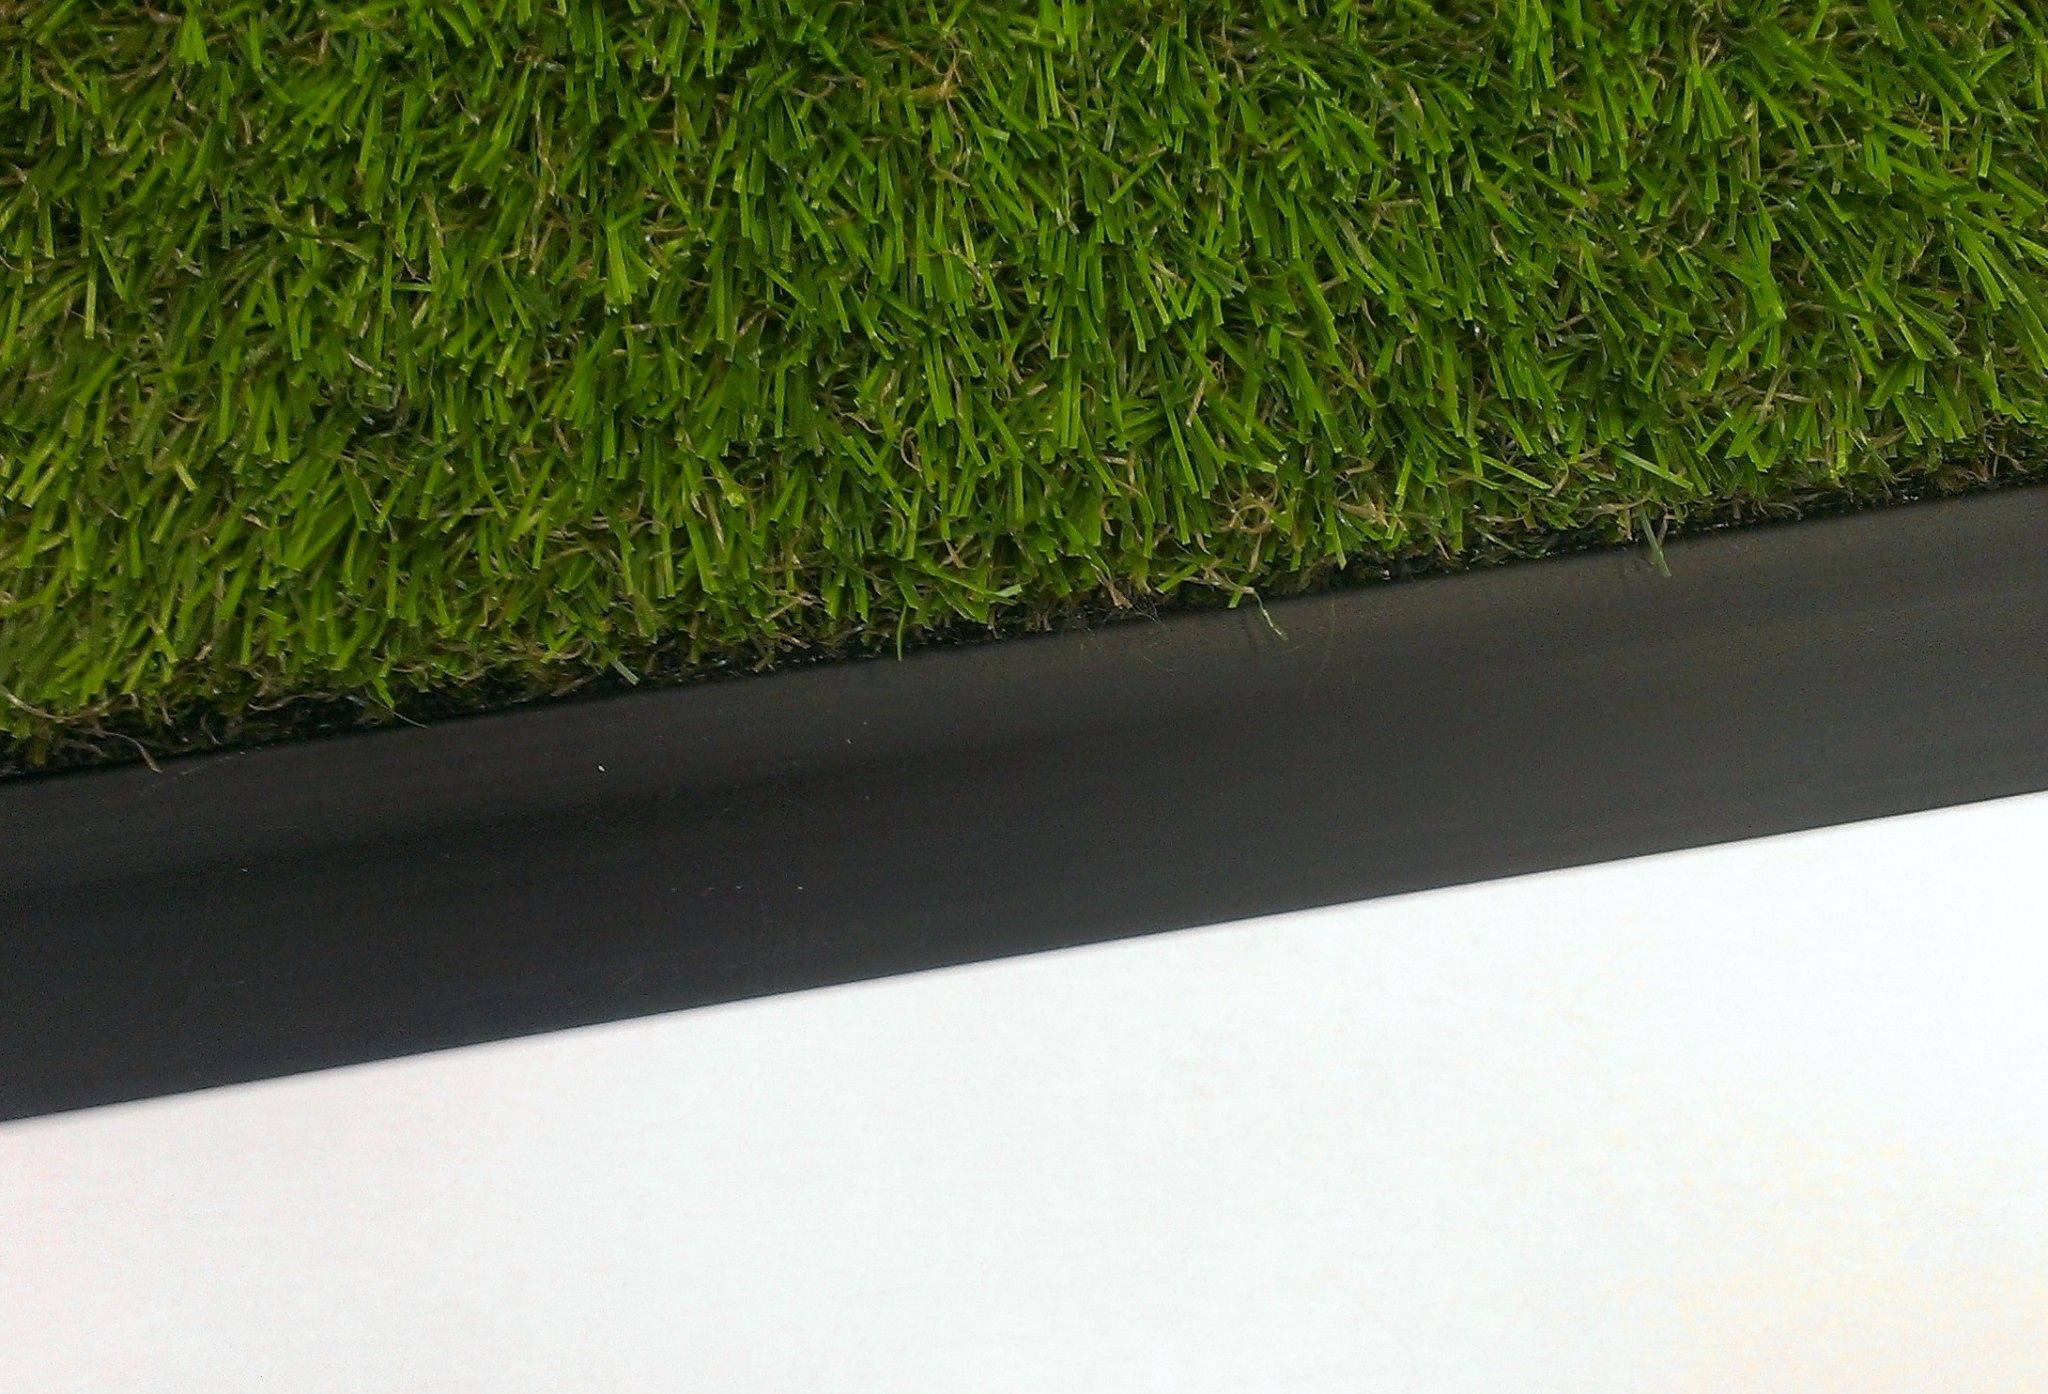 Tough Flexible Edging Trim For Astro Turf Artificial Grass